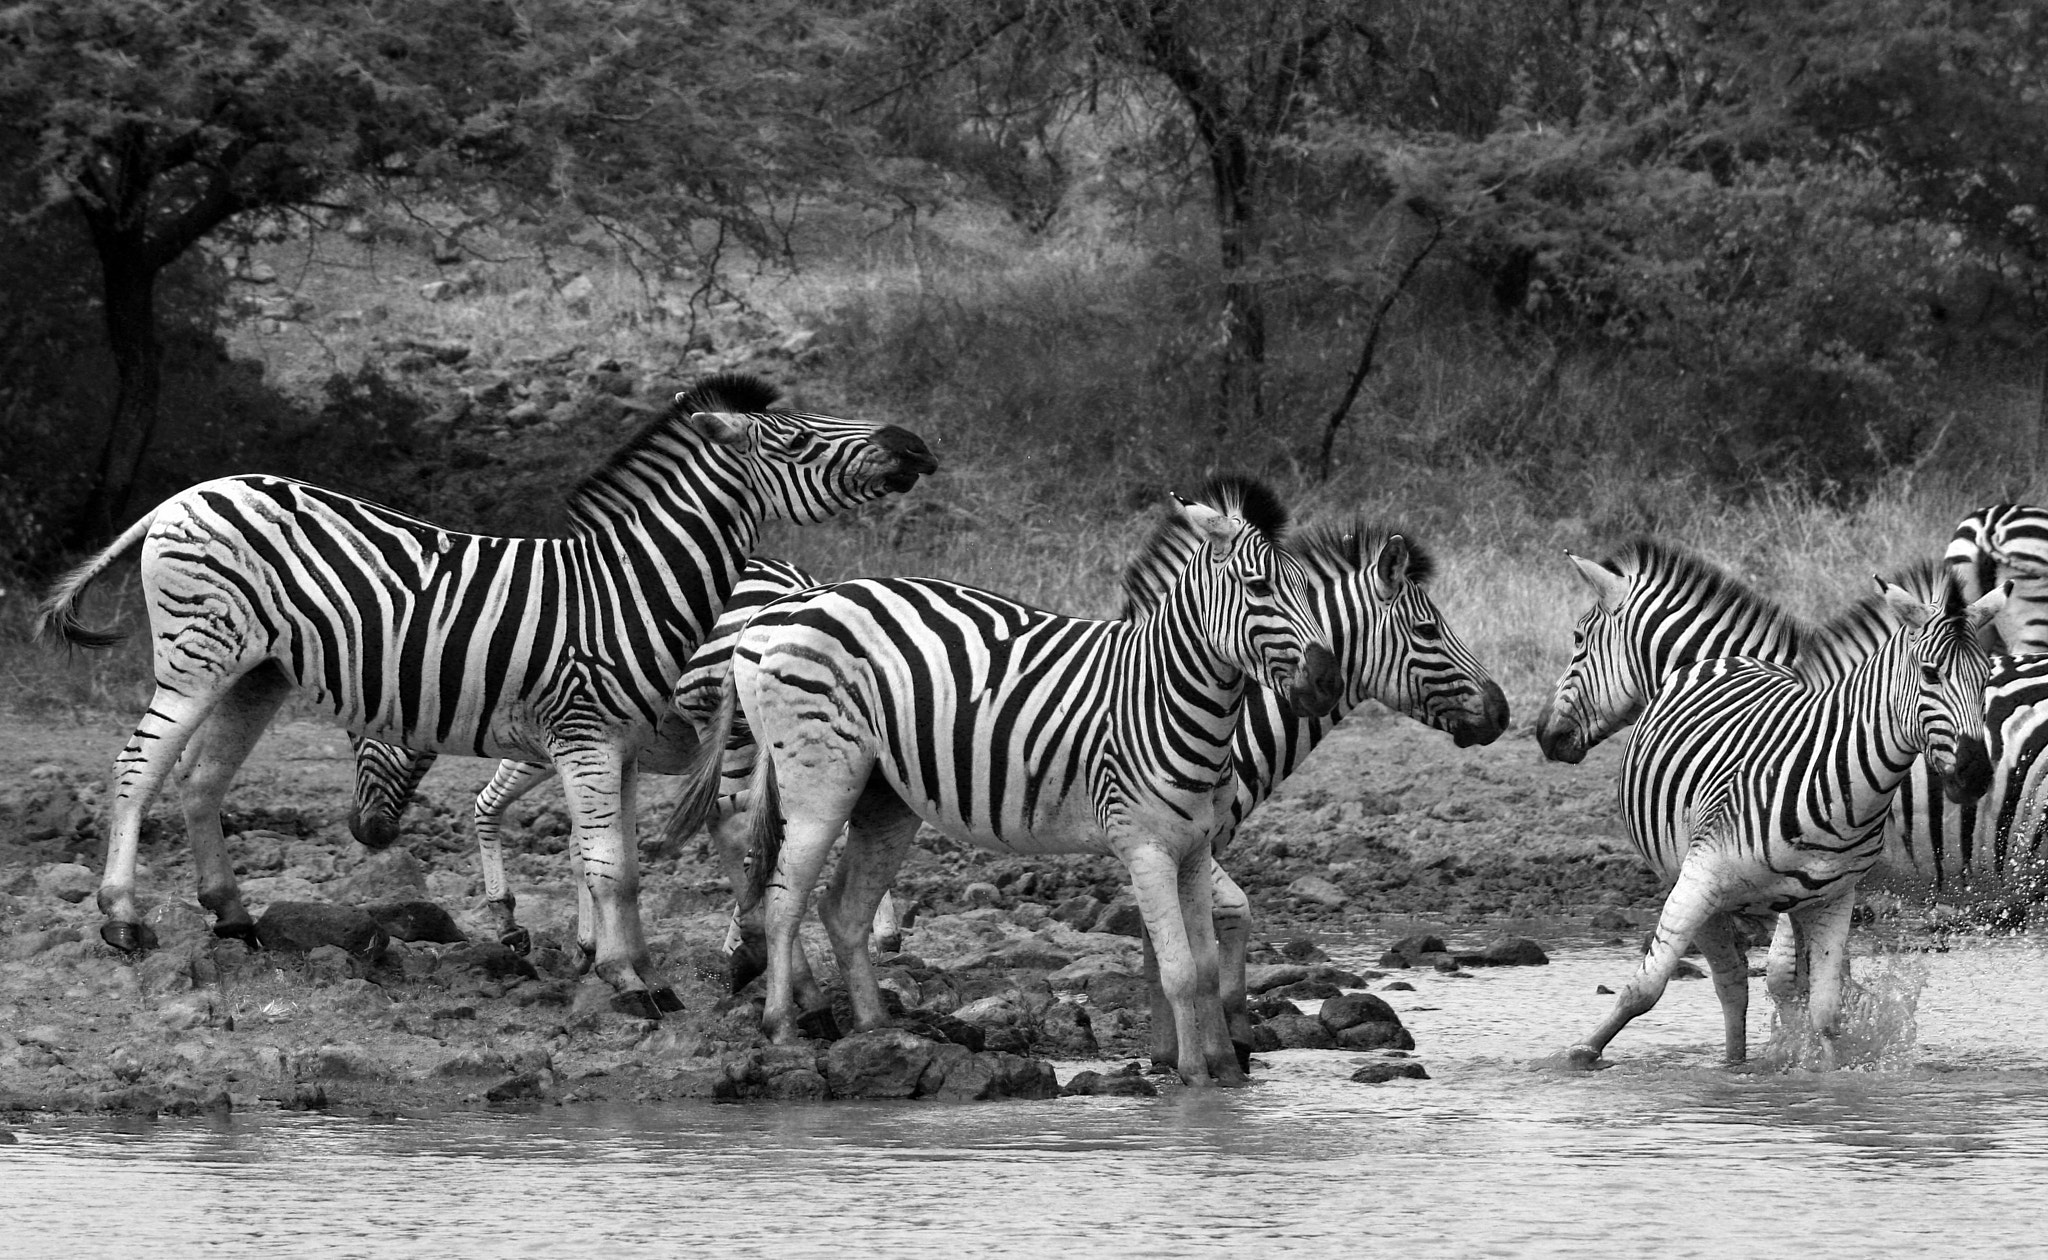 Photograph The Waterhole 2 by Nicholas Dirnberger on 500px